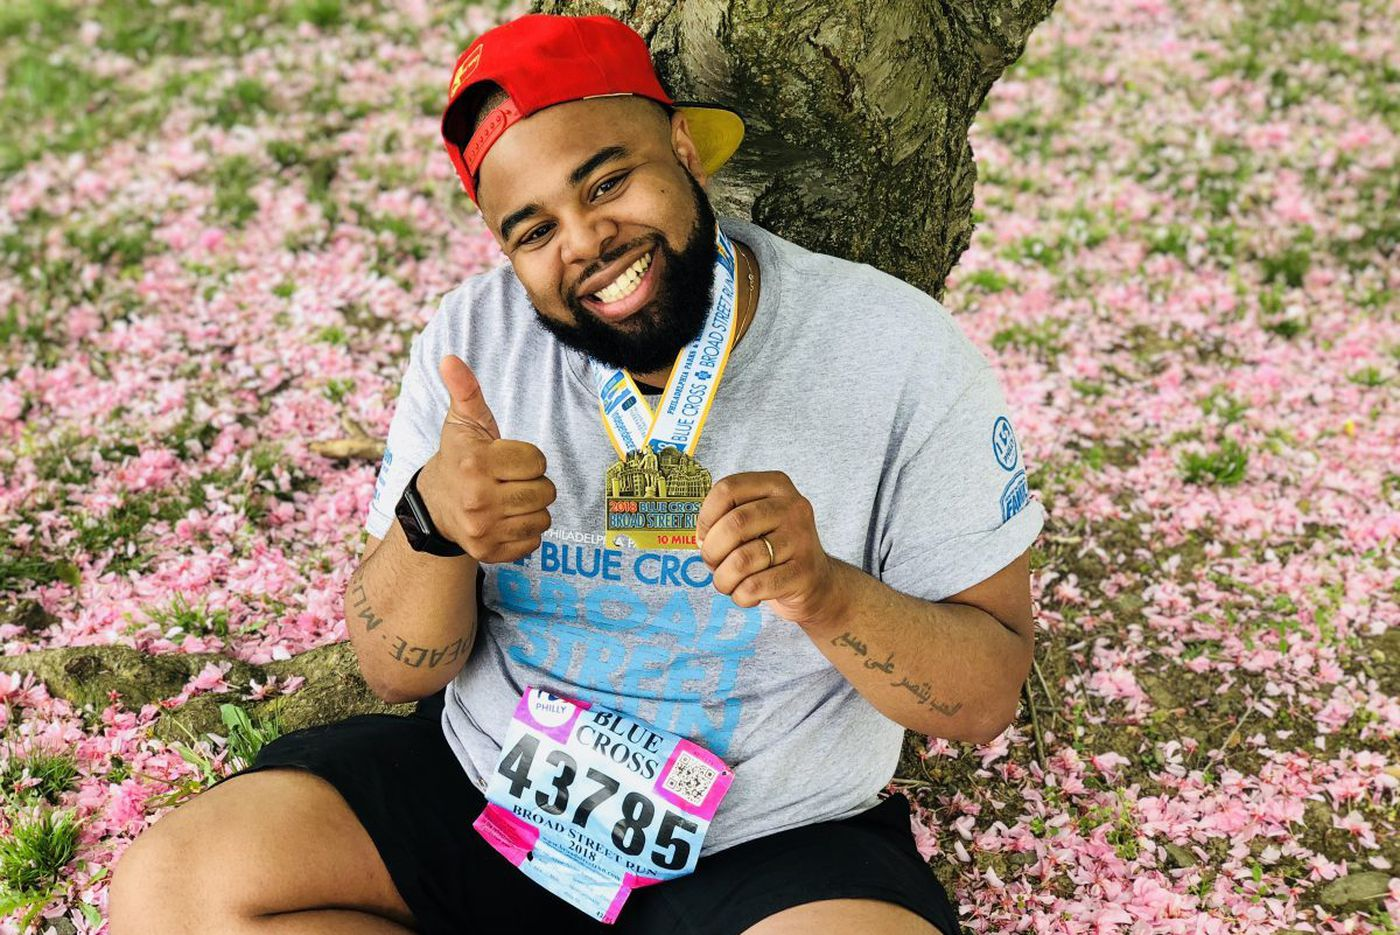 For this new runner, the Broad Street Run was an emotional experience